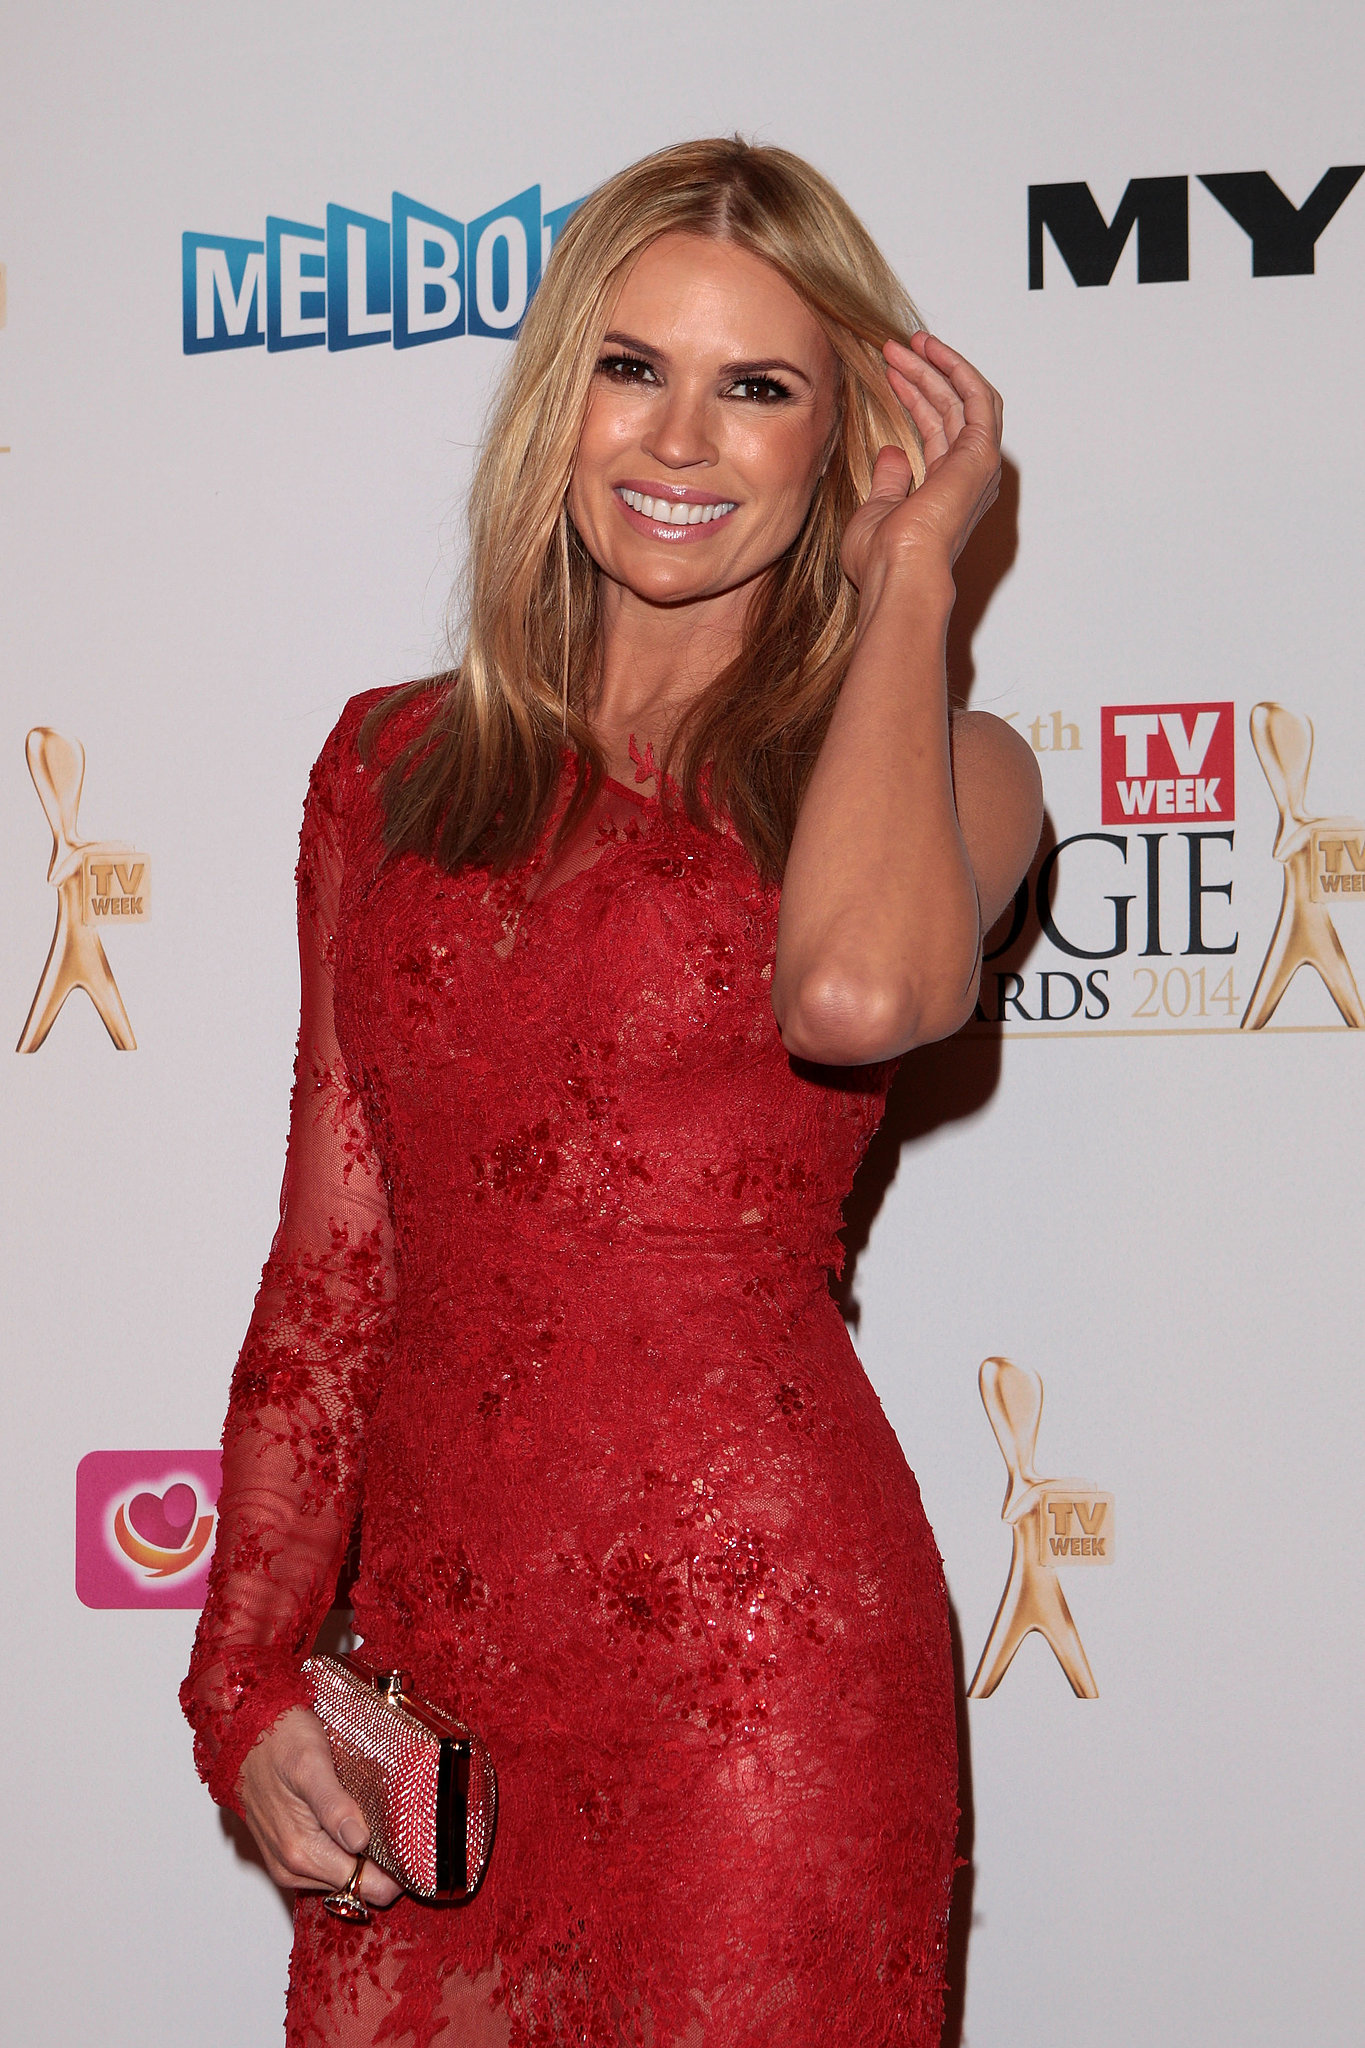 Sonia Kruger Is Pregnant With Her First Child Popsugar